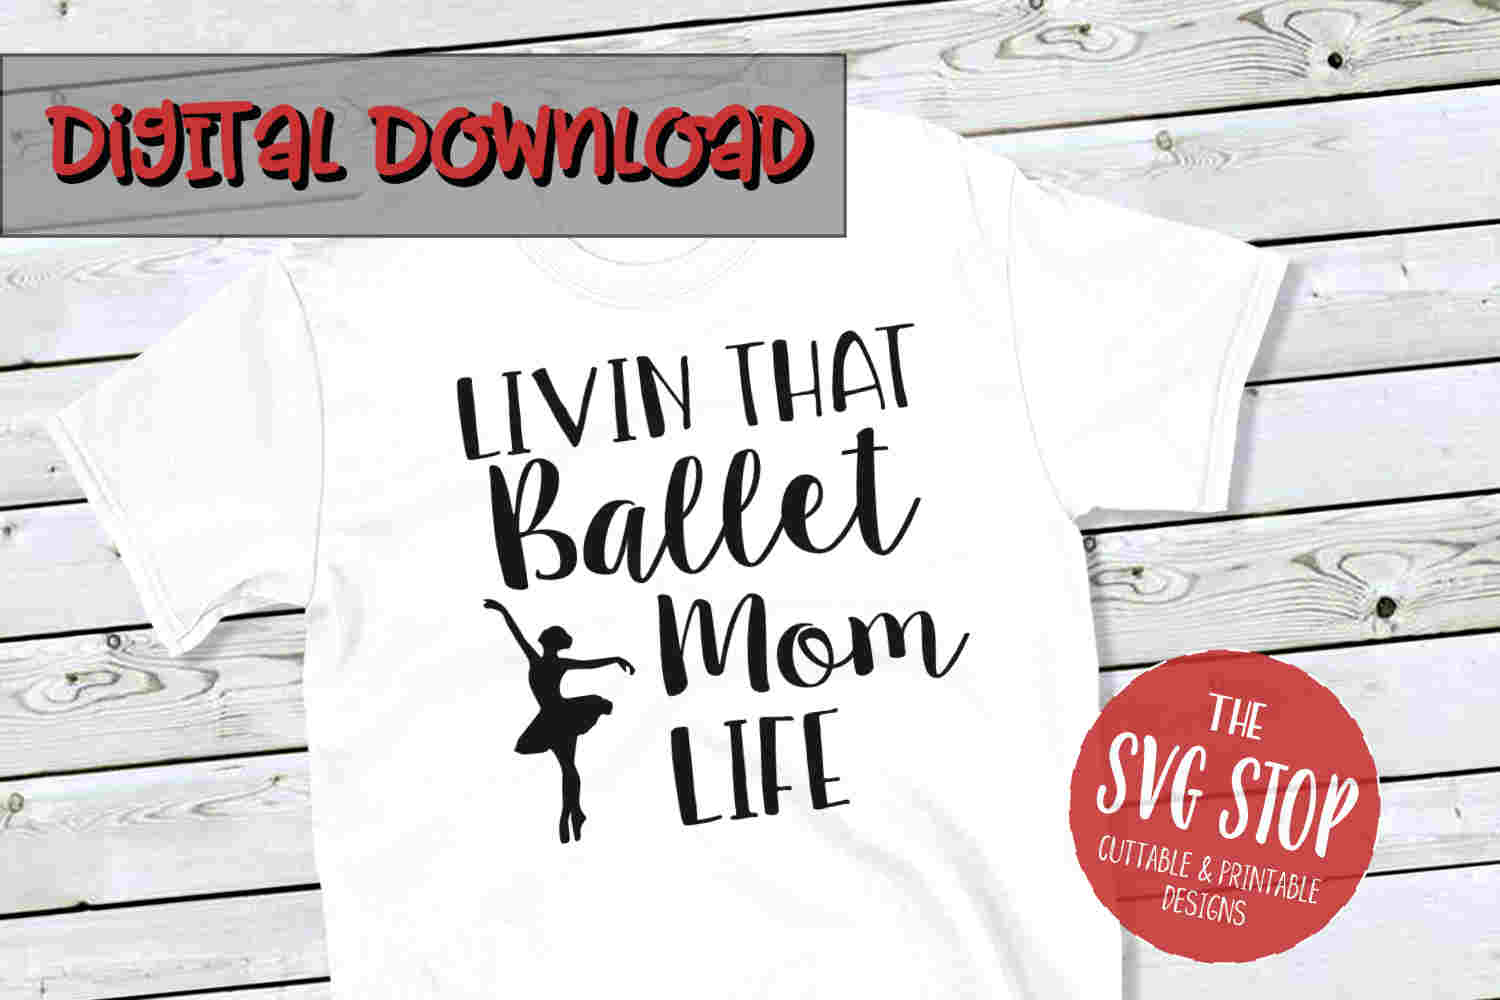 Ballet Mom Life -SVG, PNG, DXF example image 1